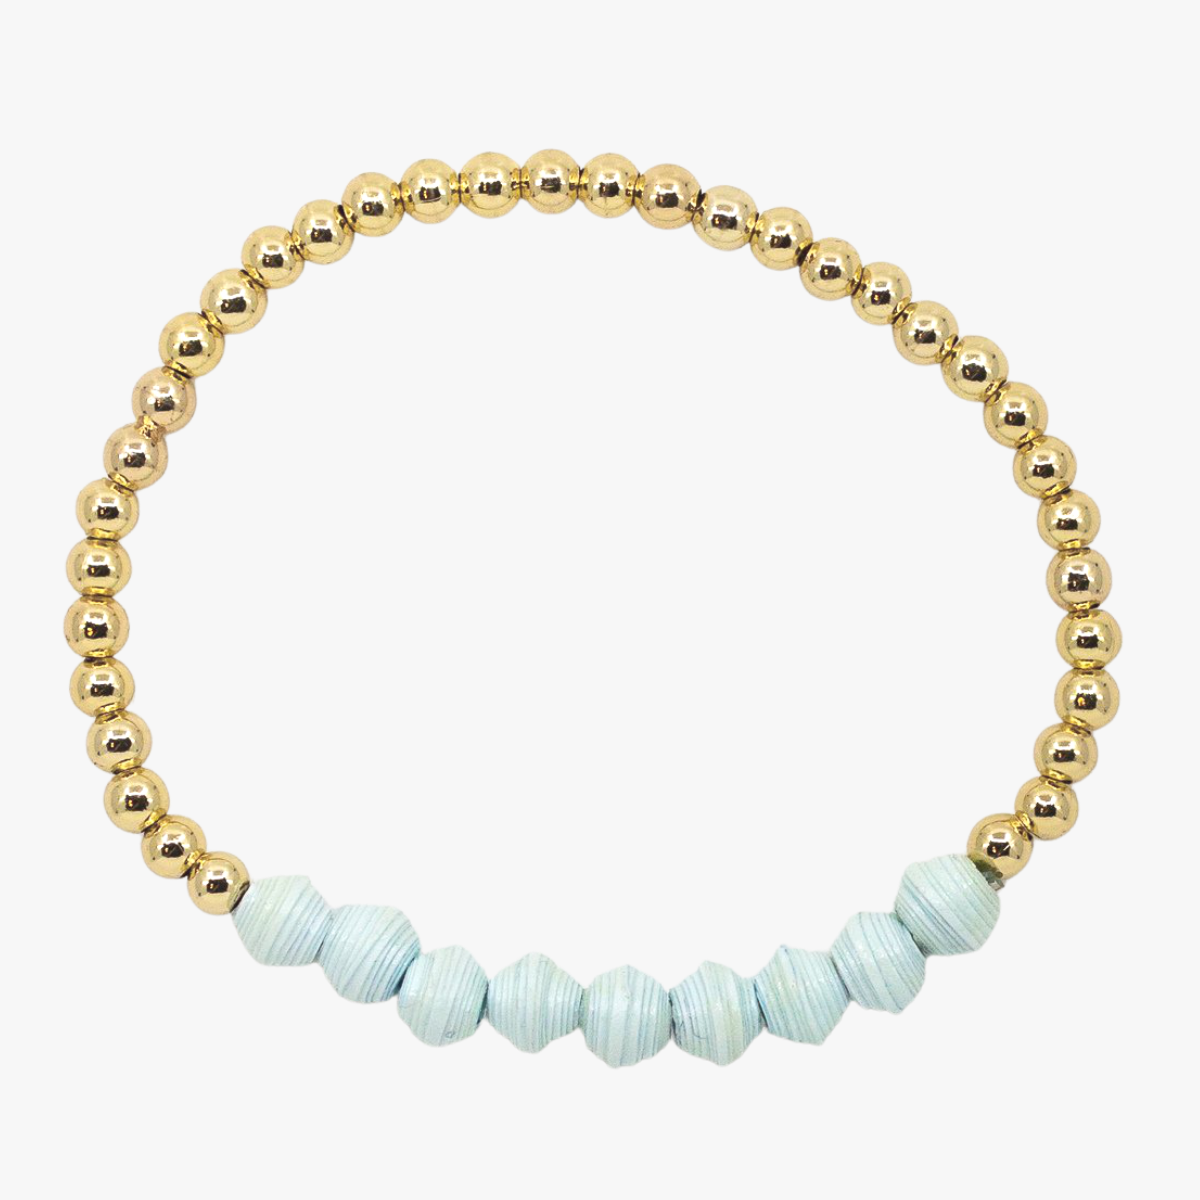 Ethically made bracelet with 18k gold beads and icey blue paper beads